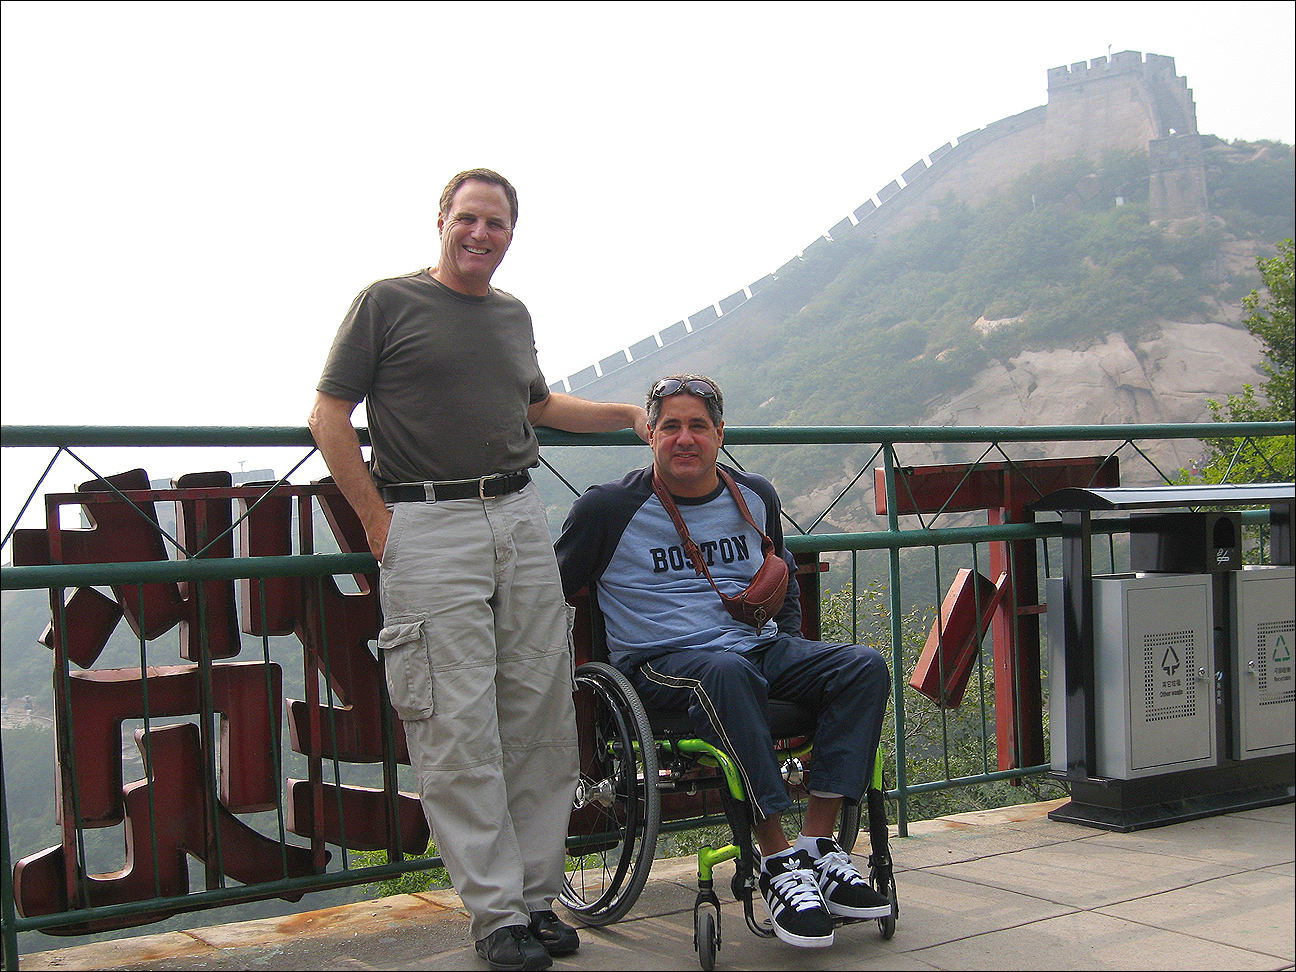 BUDDIES: Jack Walter poses with Steve Ferguson (right), his Beijing Paralympic sidekick. (Photo courtesy Jack Walter)